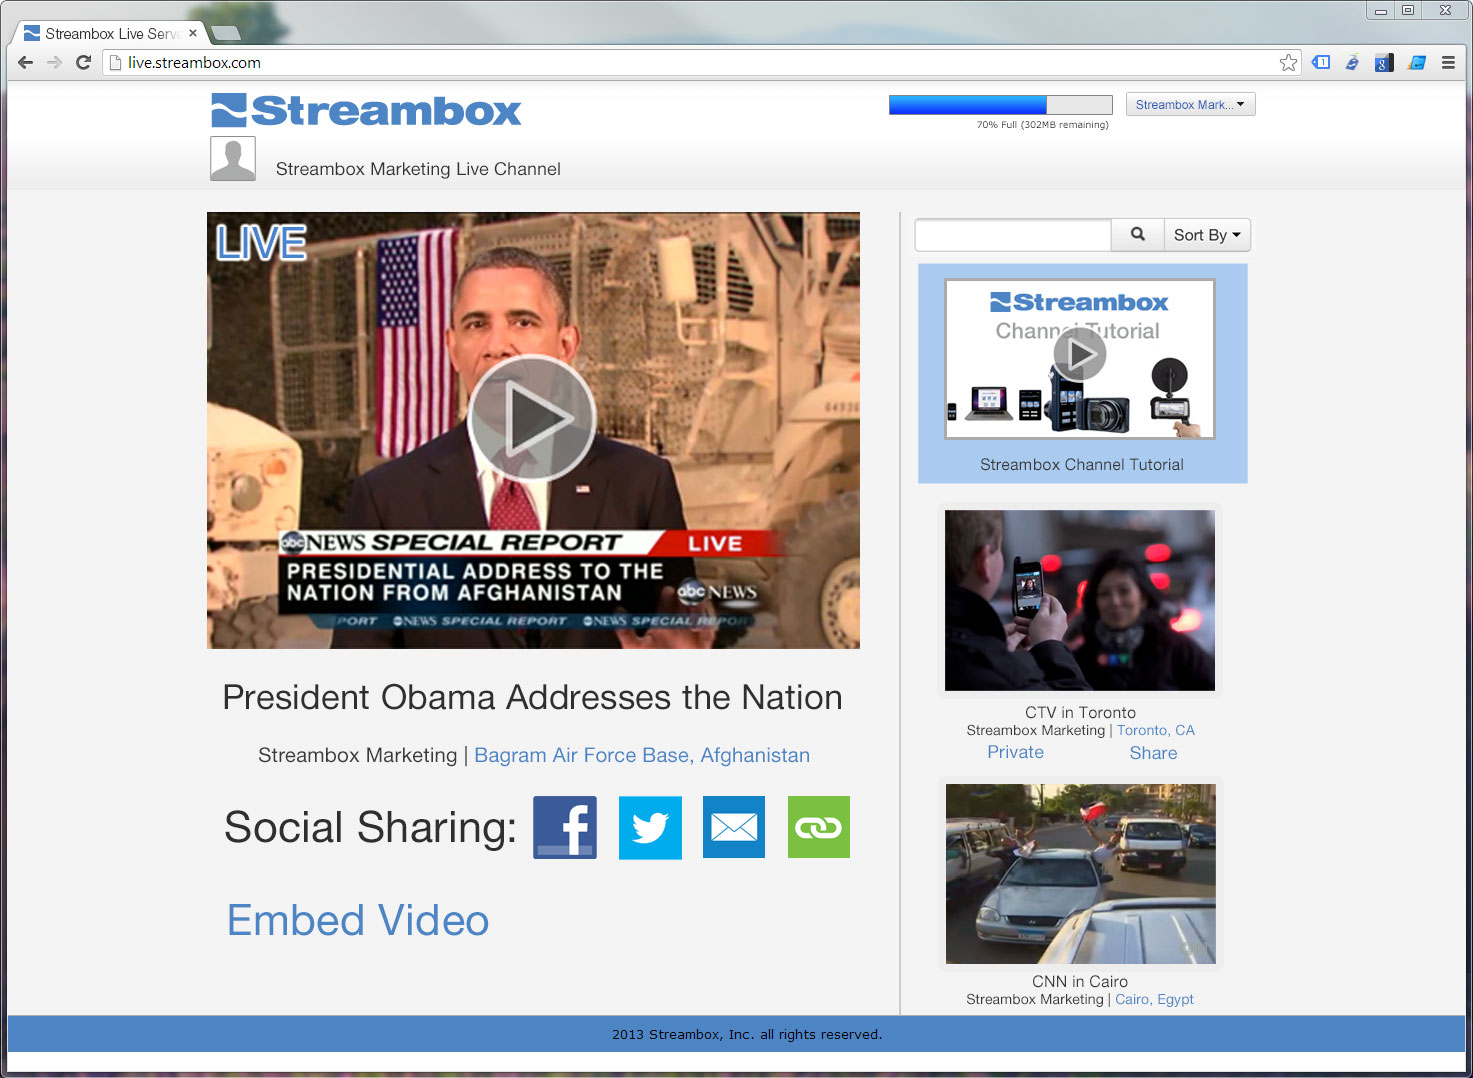 Streambox Live Channel Main Page